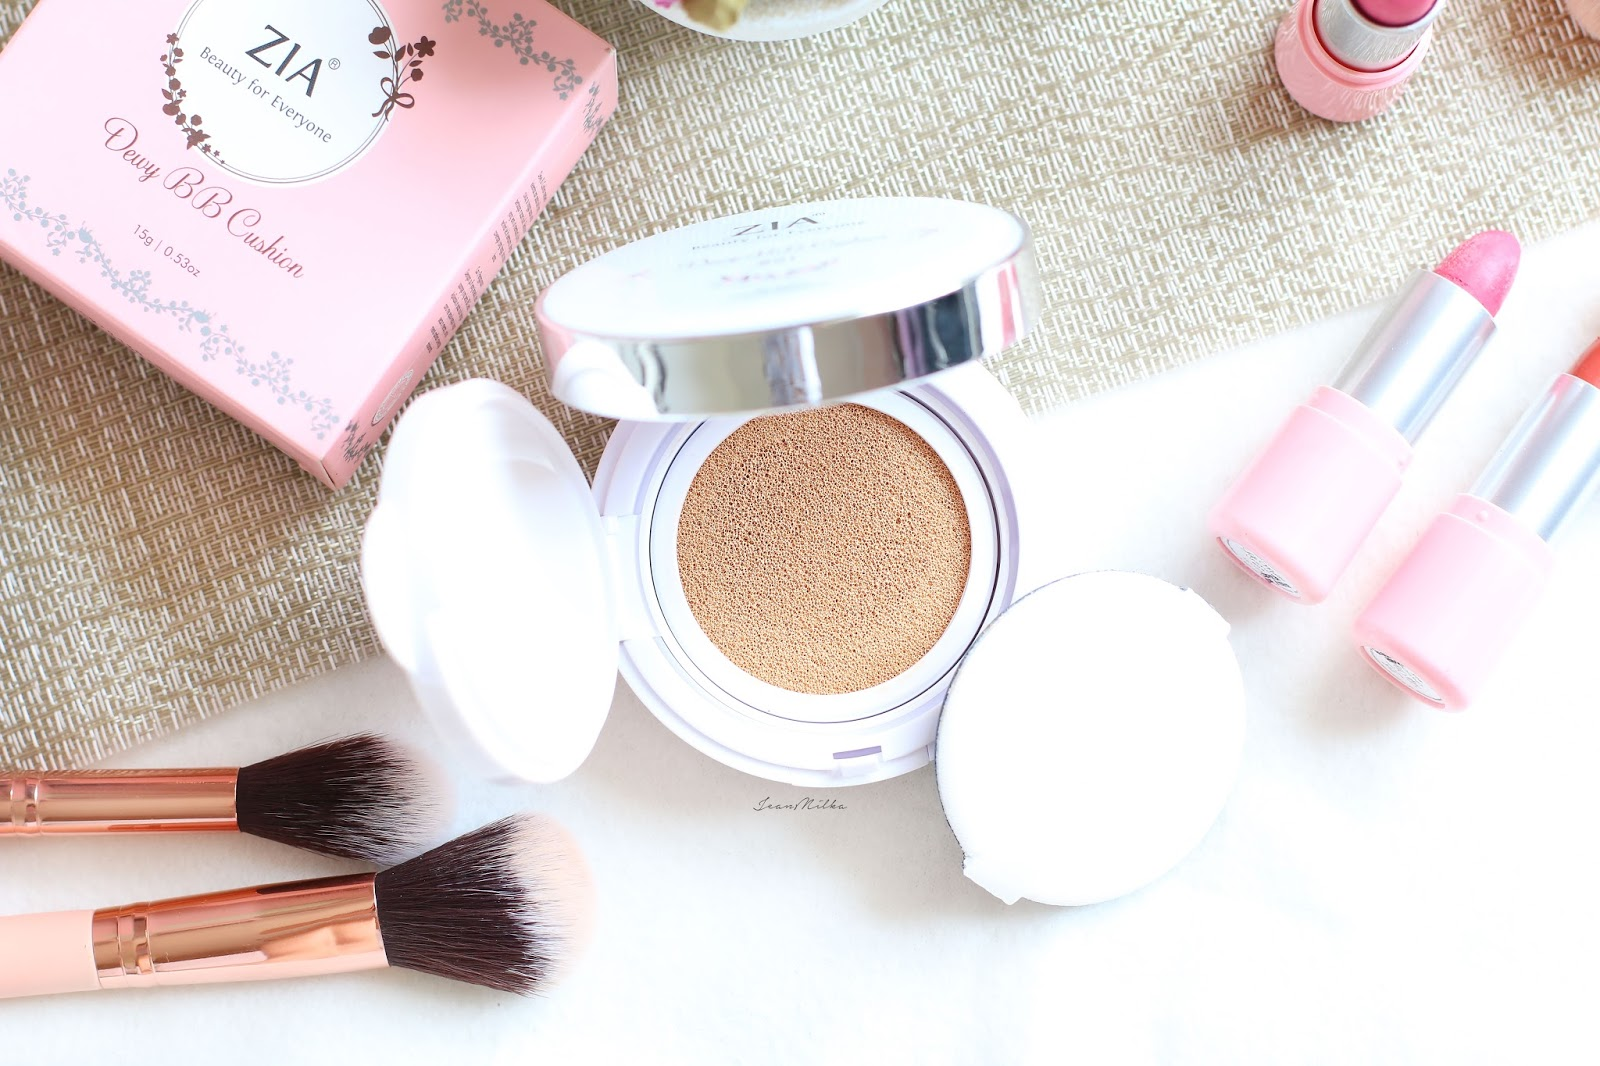 zia, zia skincare, makeup, beauty, produk indonesia, makeup indonesia, produk lokal, review, cushion, bb cushion